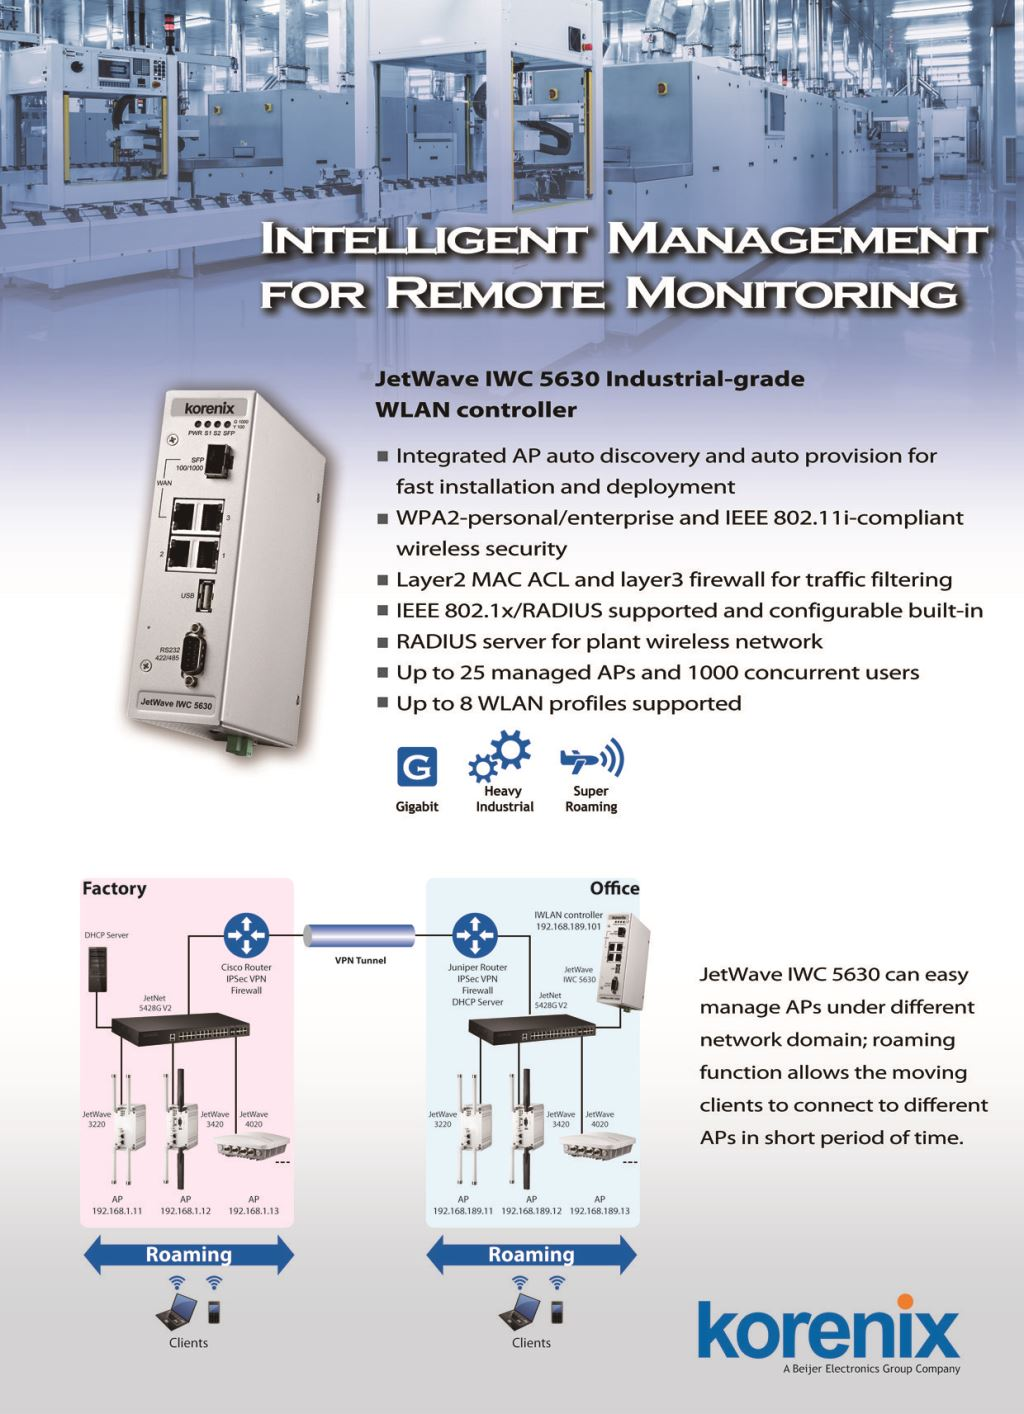 Korenix JetWave IWC 5630 Industrial-grade WLAN Controller provides Intelligent Management for Remote Monitoring.